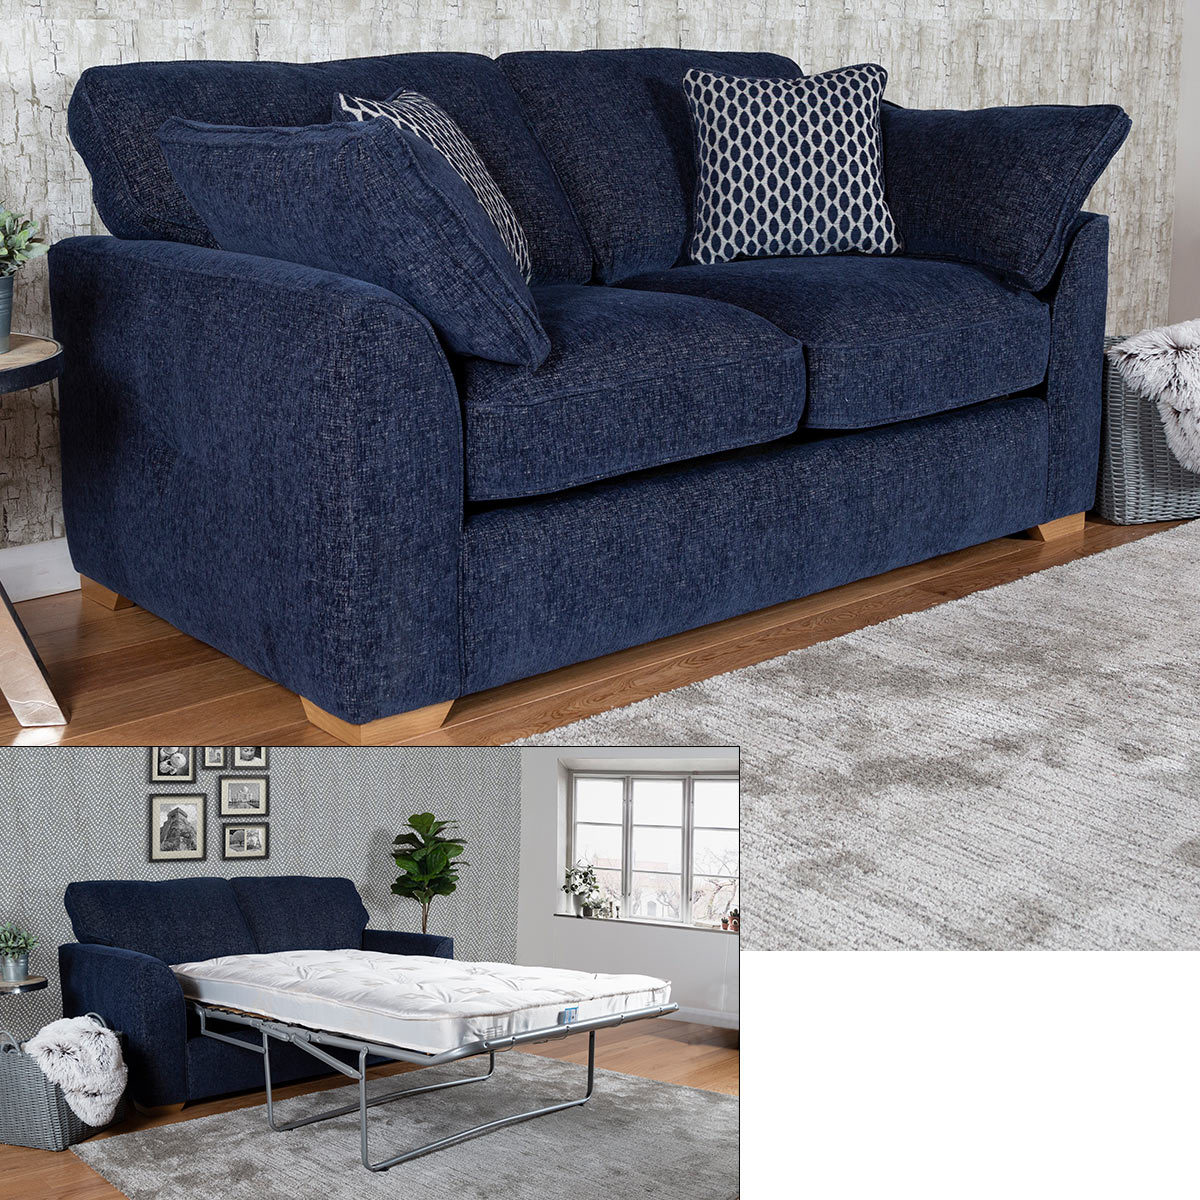 Landree Fabric Full Size Sleeper Sofa Bed With 2 Accent Pillows Costco Uk